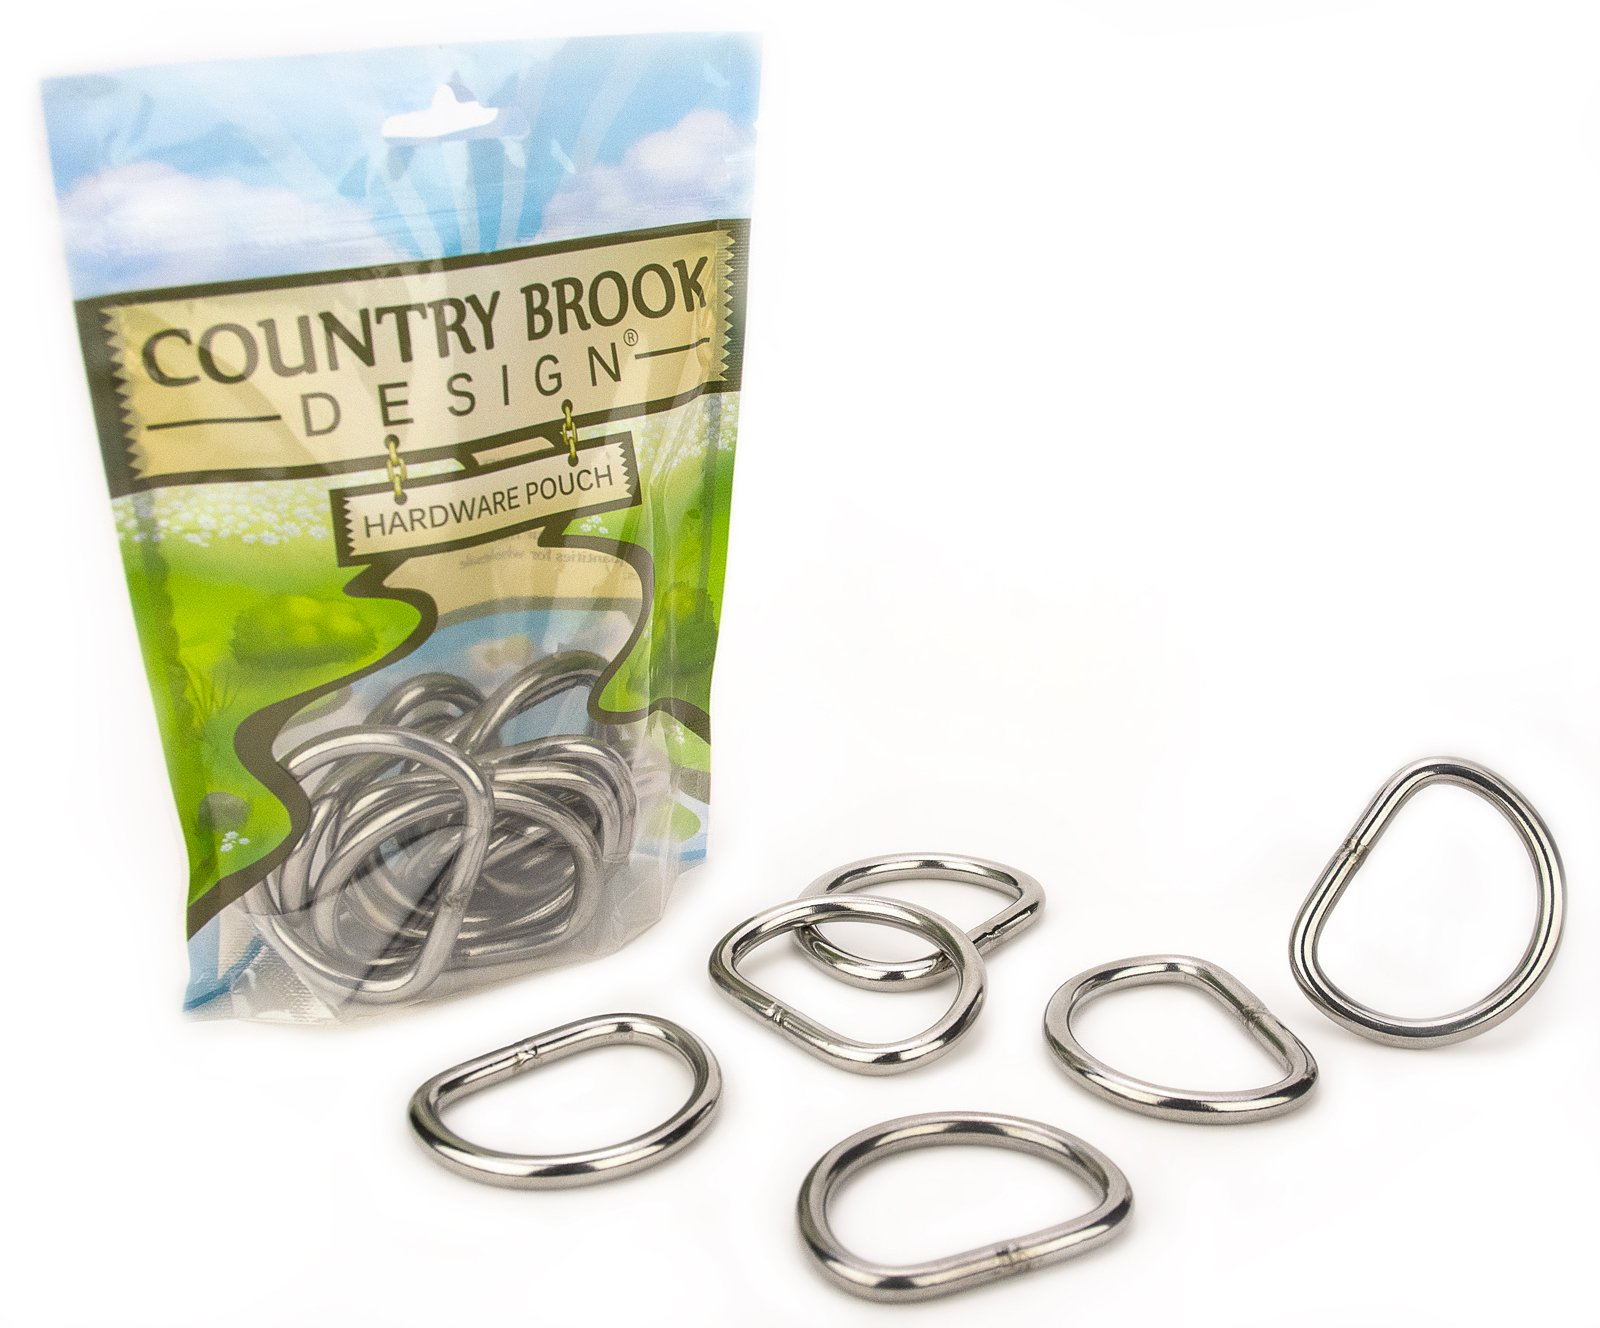 50 - Country Brook Design - 1 1/2 Inch Stainless Steel Welded D-Rings by Country Brook Design